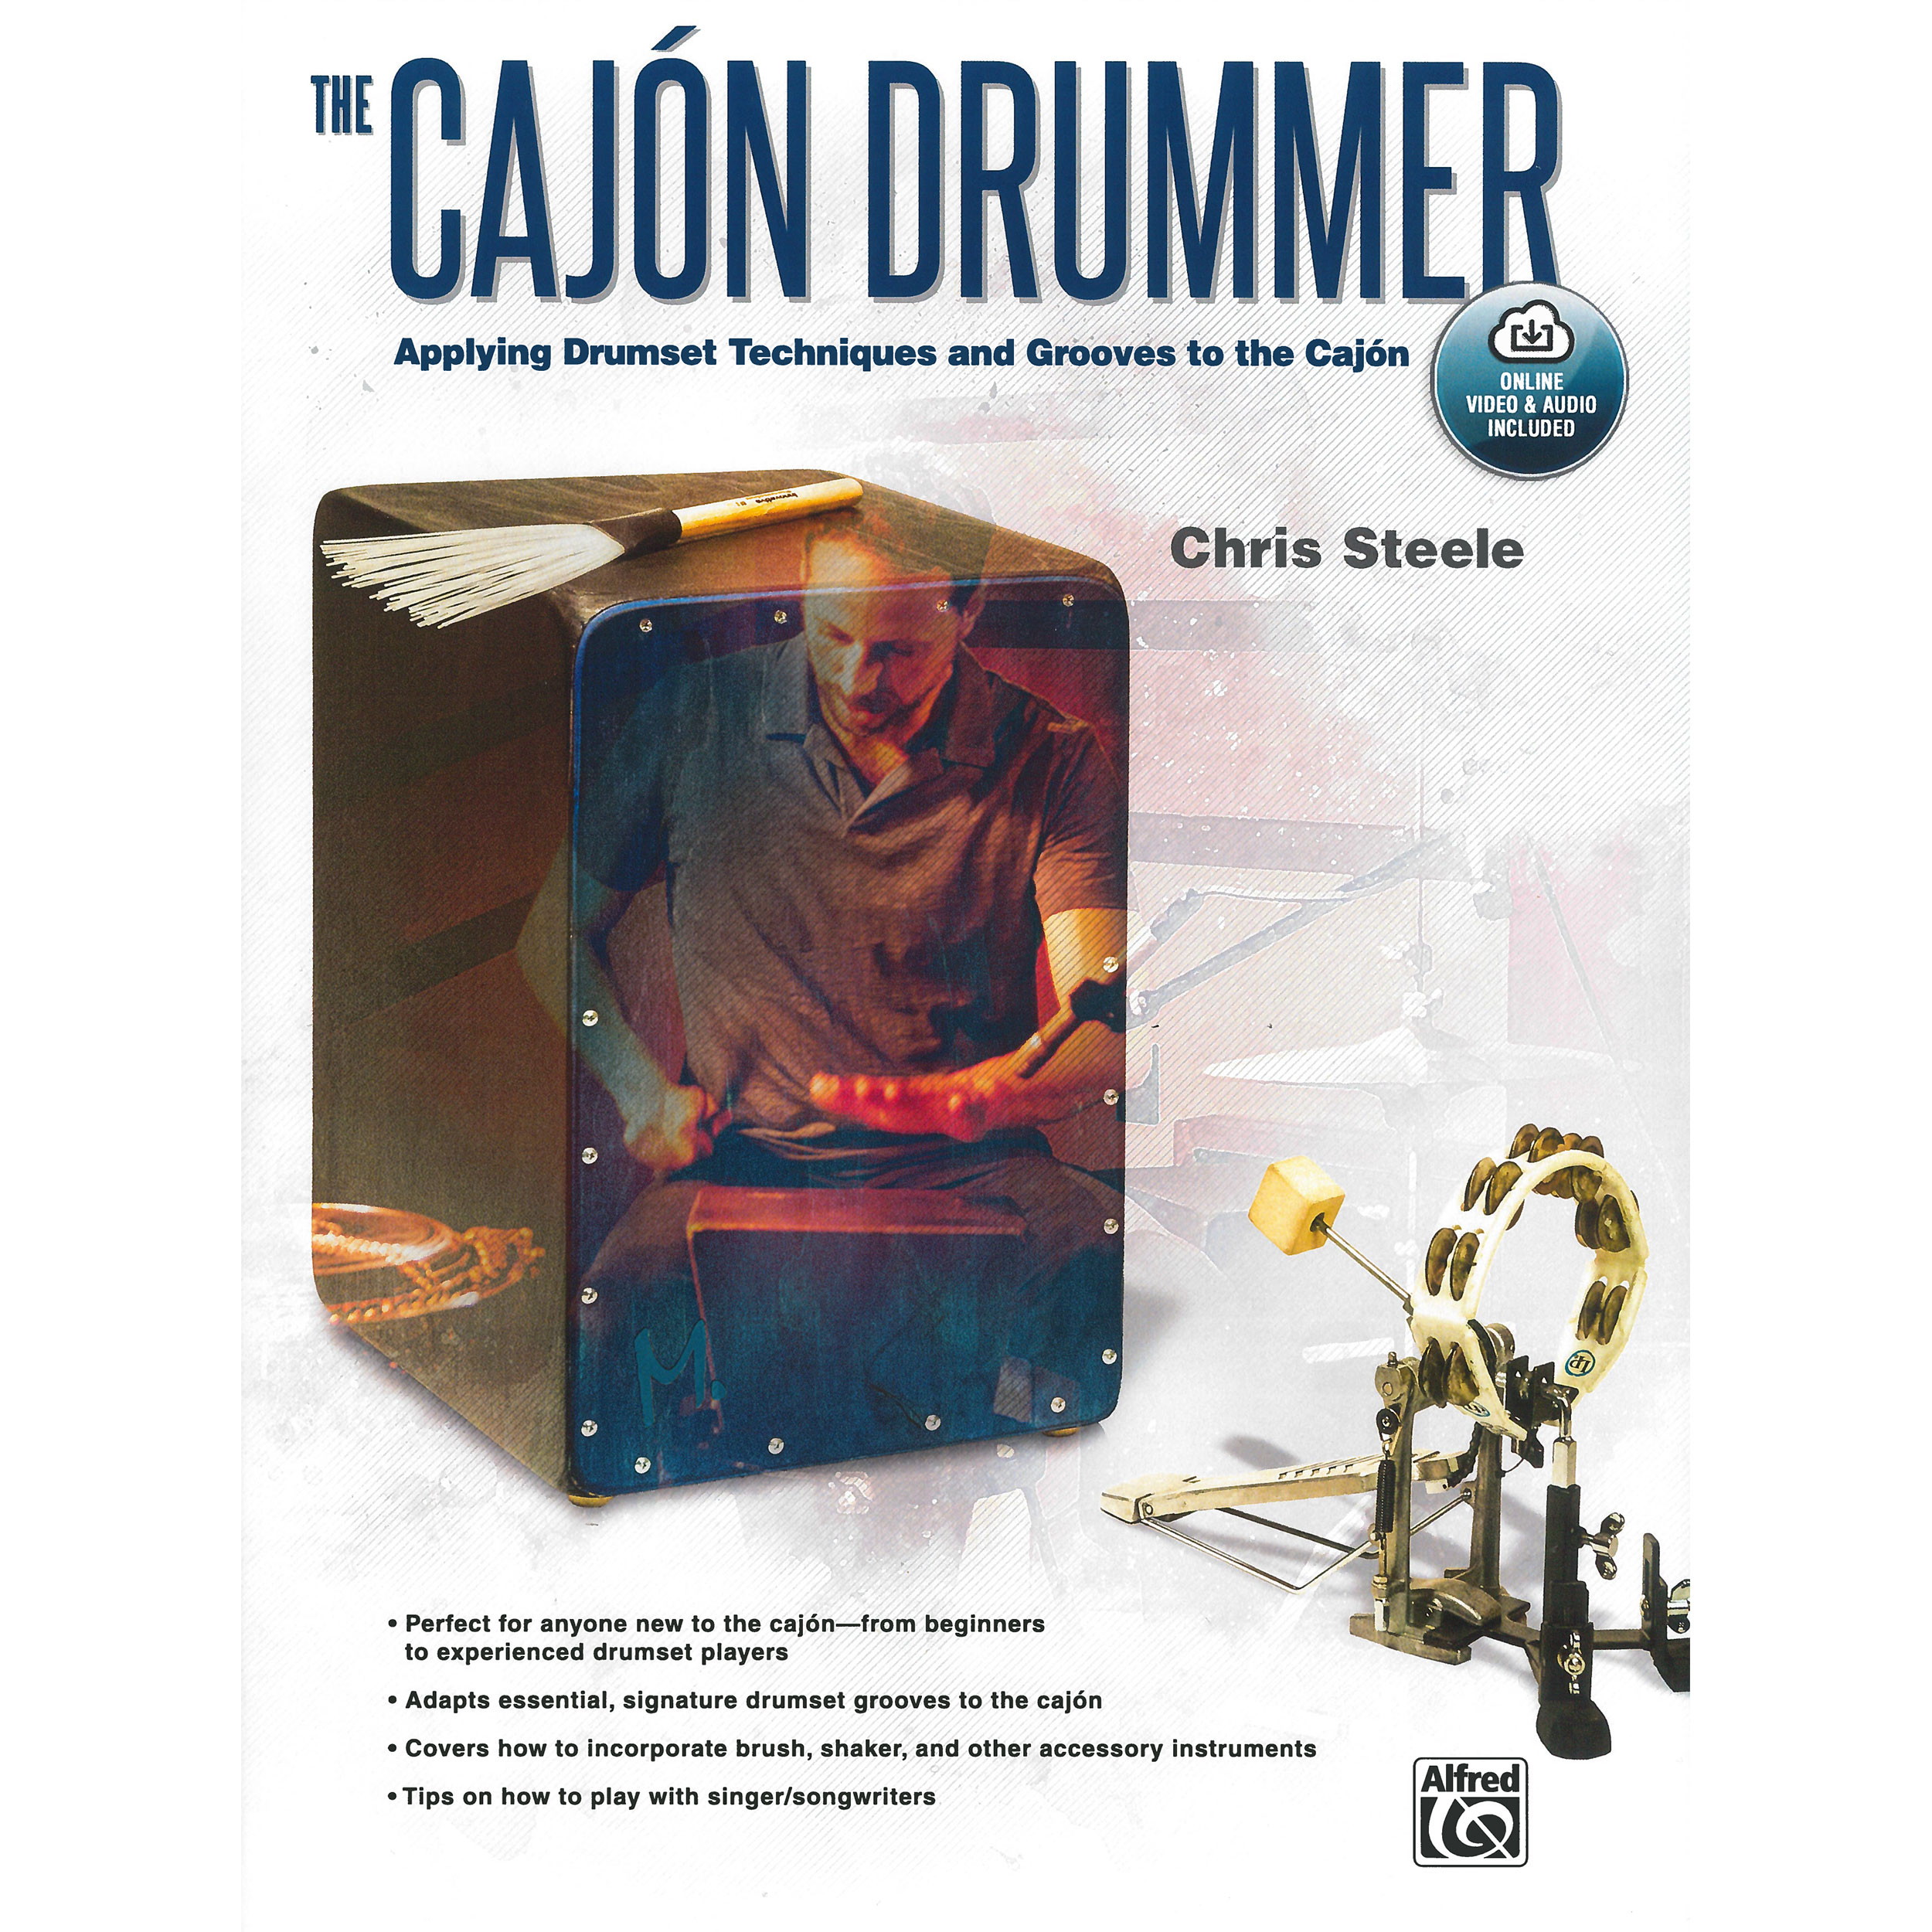 The Cajon Drummer by Chris Steele